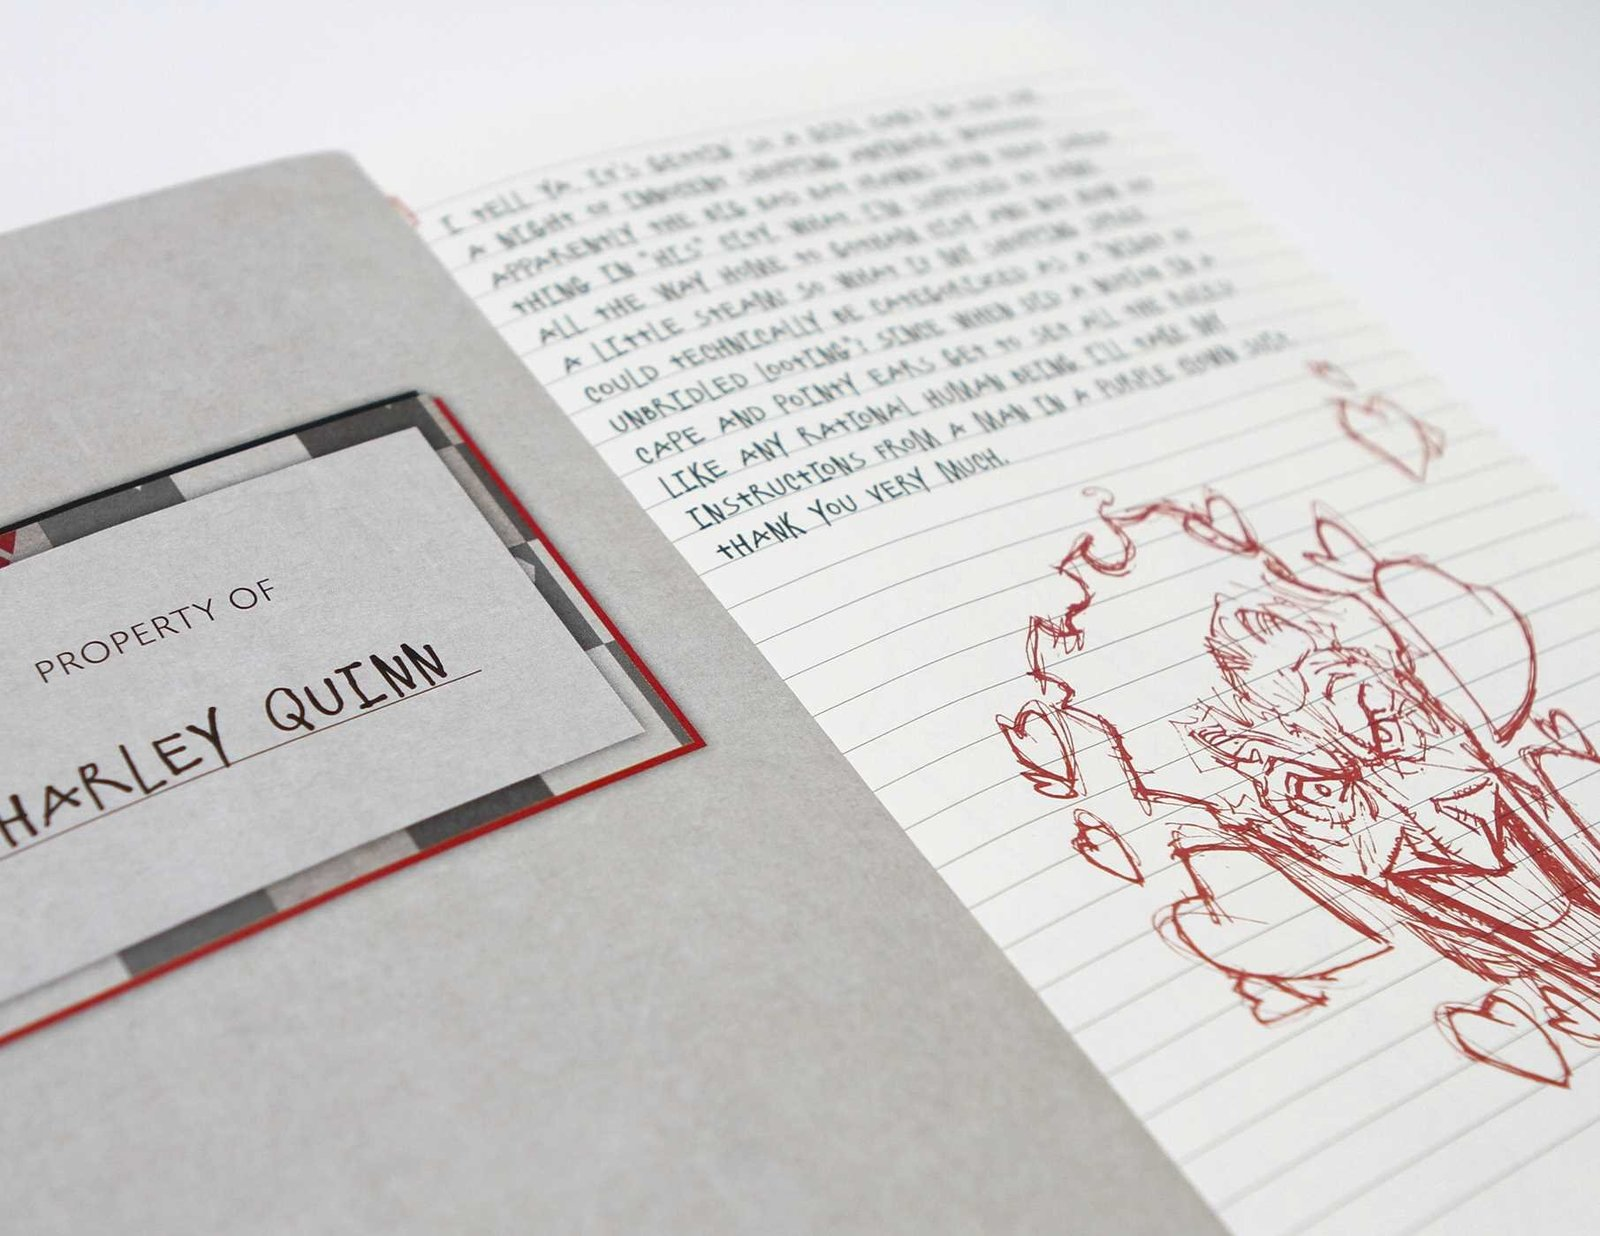 Harley Quinn Hardcover Ruled Journal by Matthew K Manning image